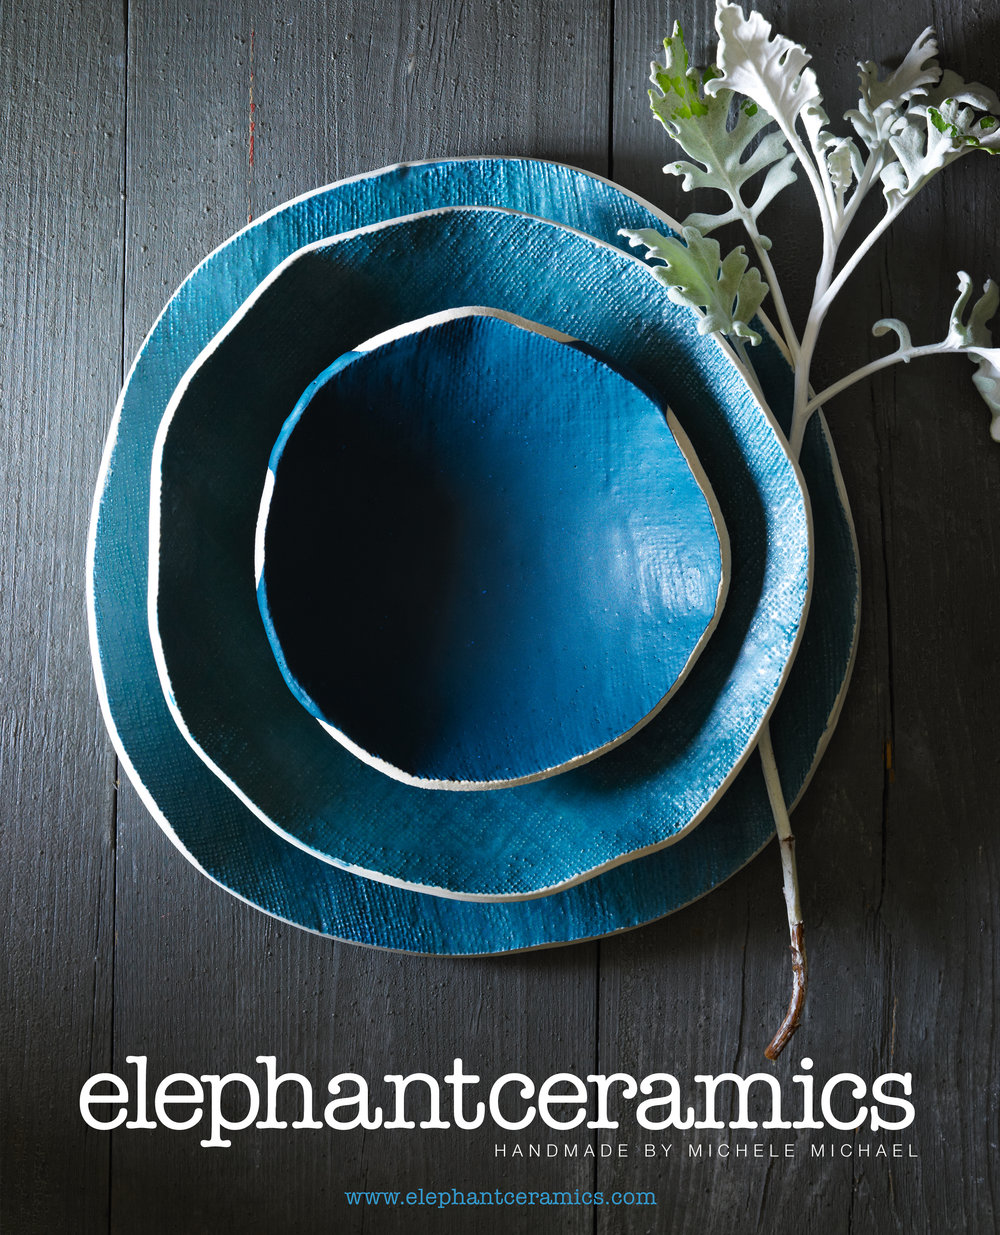 Advertisement Client: Elephant Ceramics